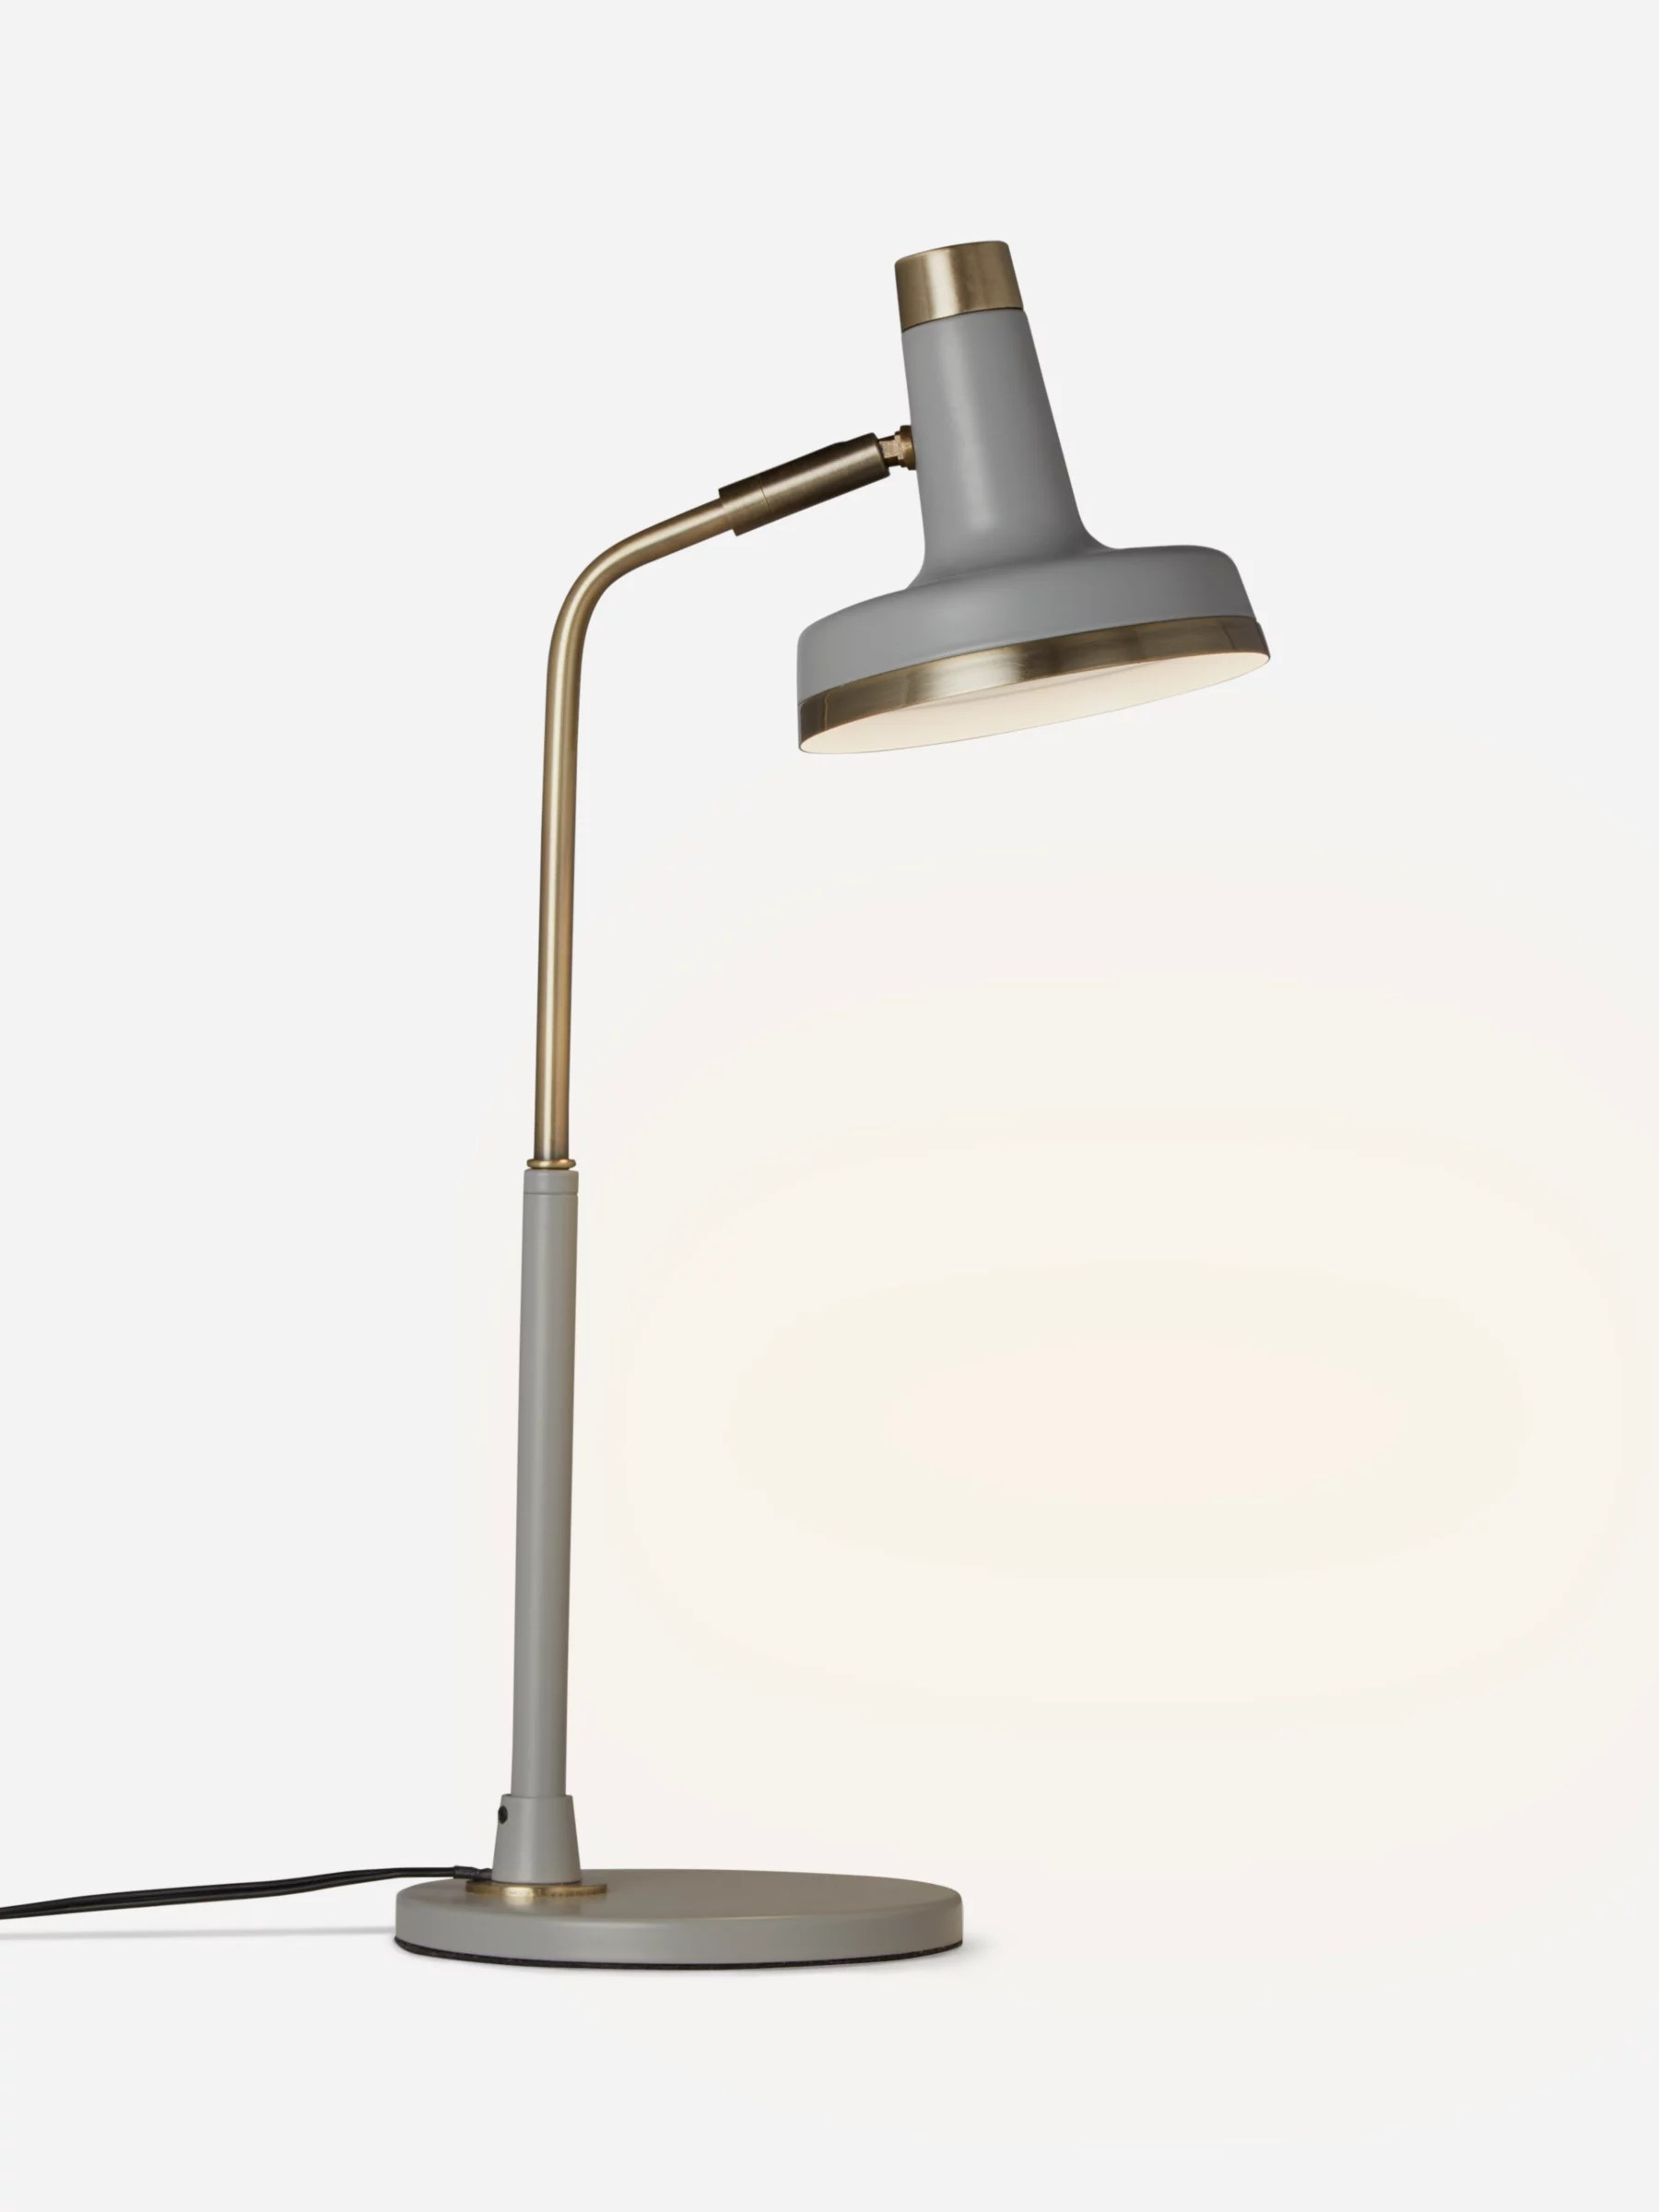 Brass Touch Lamps Bedside John Lewis Scott Led Touch Lamp Grey Brass At John Lewis